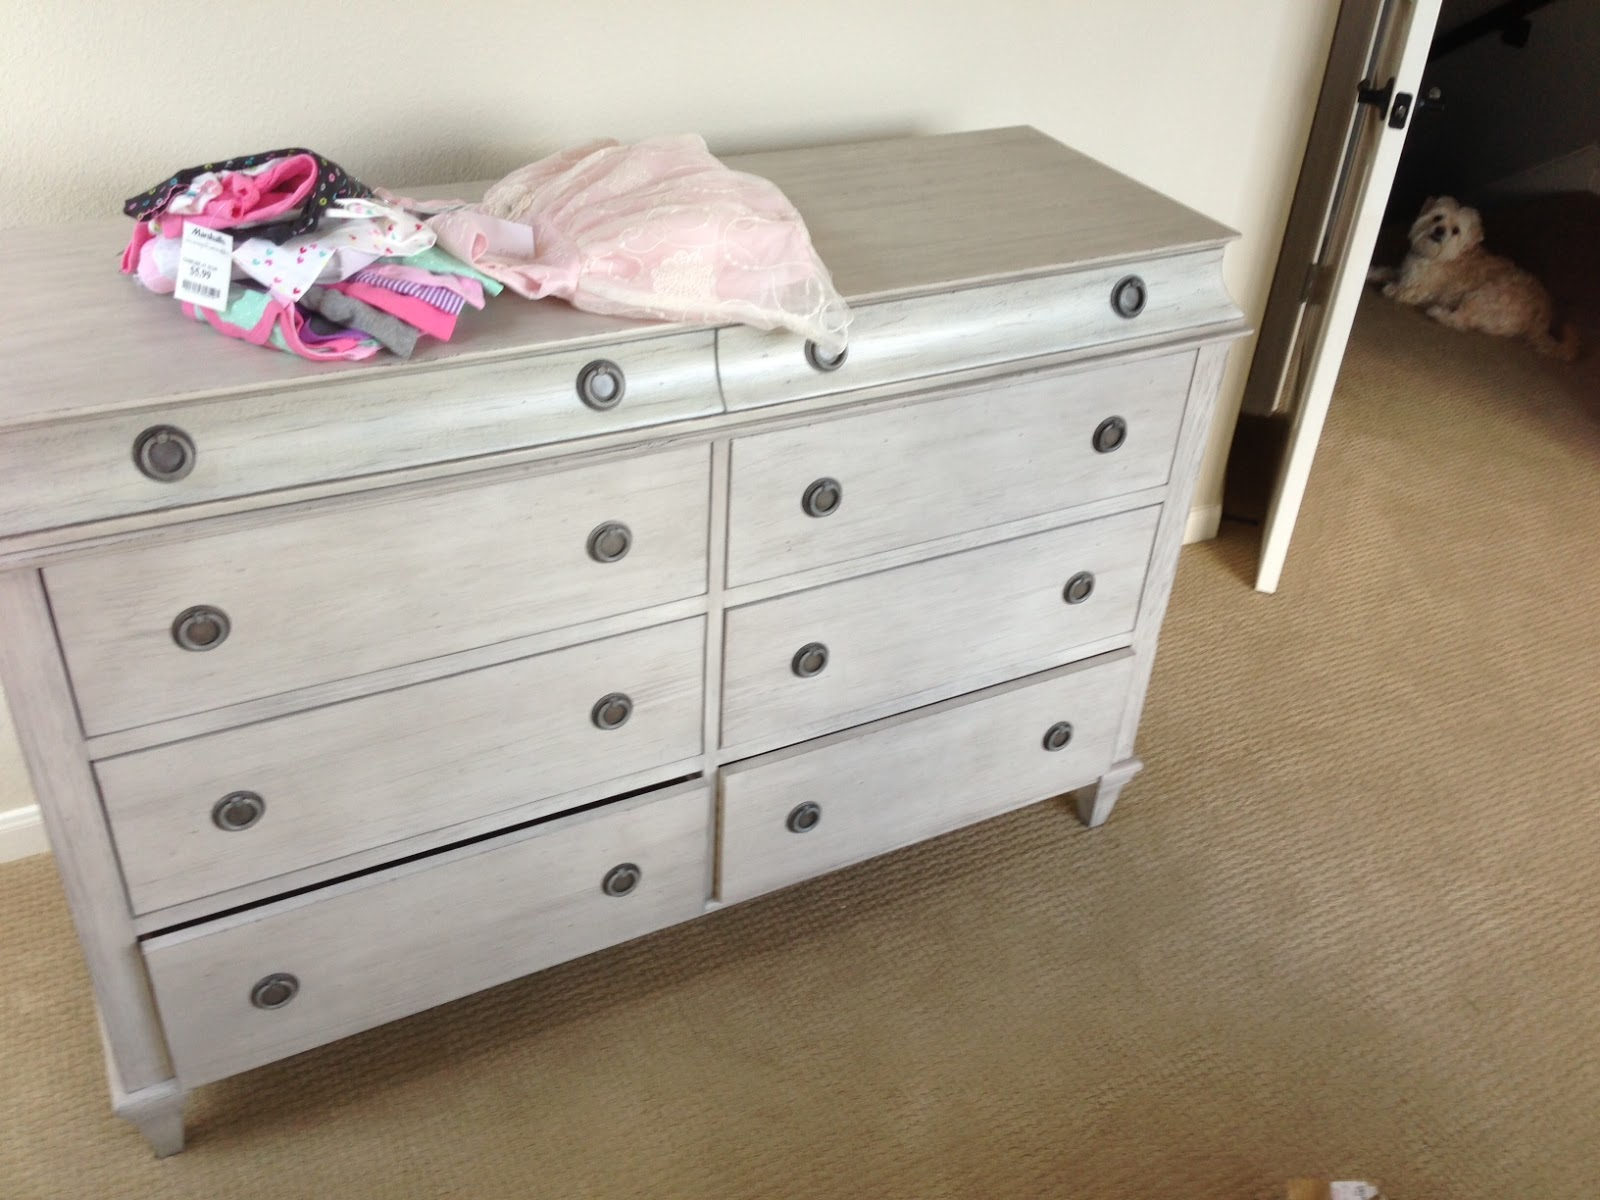 dressers babyurniture dresserssears tables cottage changing table collections charleston graco oxford baby for dresser co delta image jejuimage sale